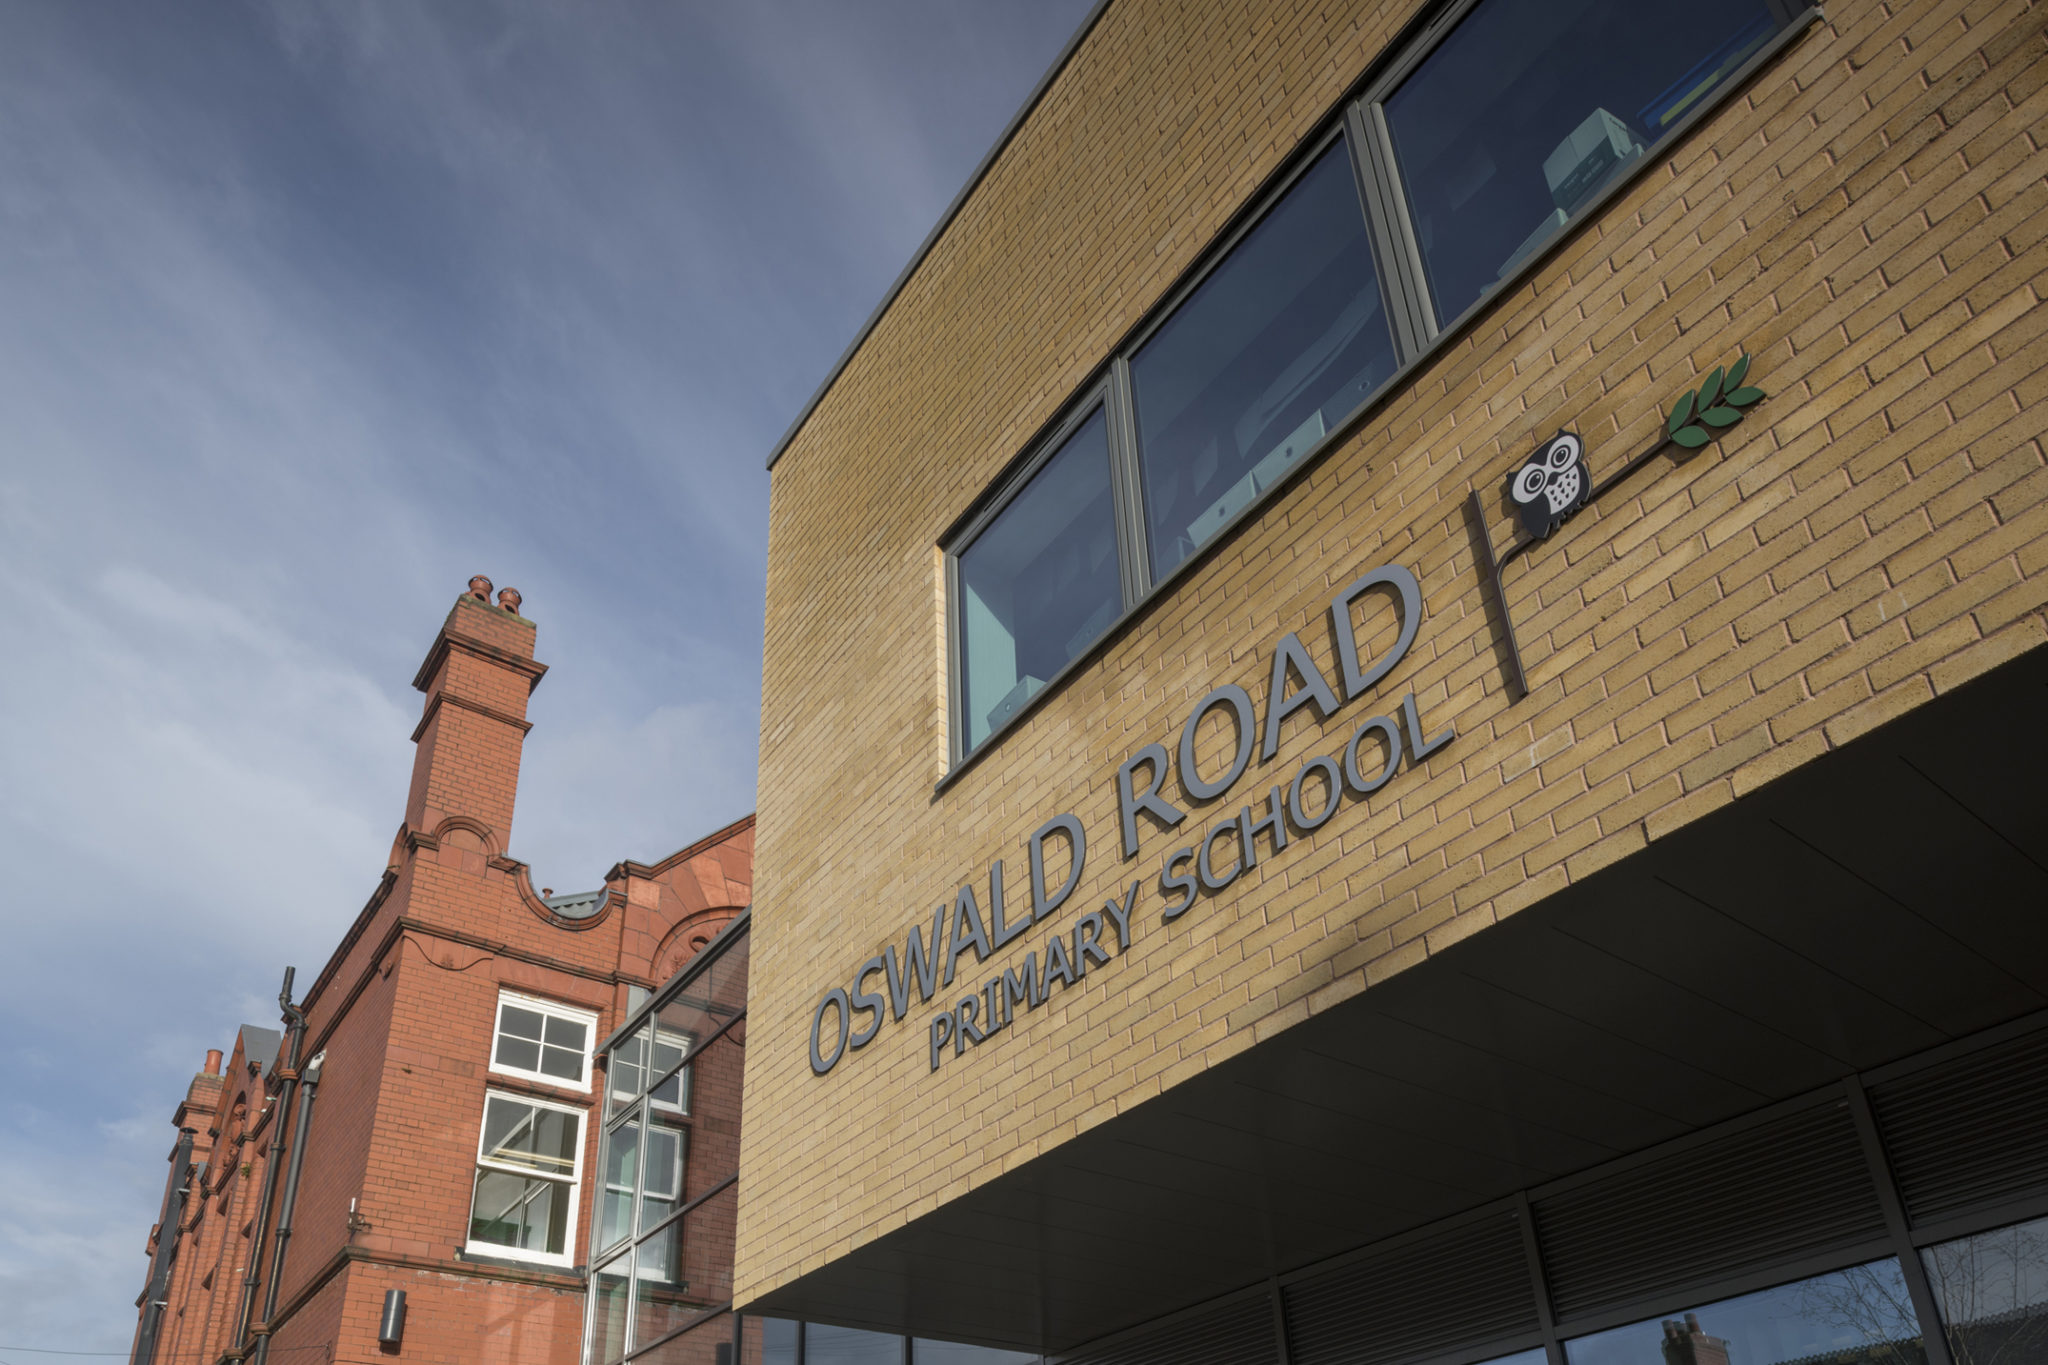 Oswald Road Primary School, Manchester